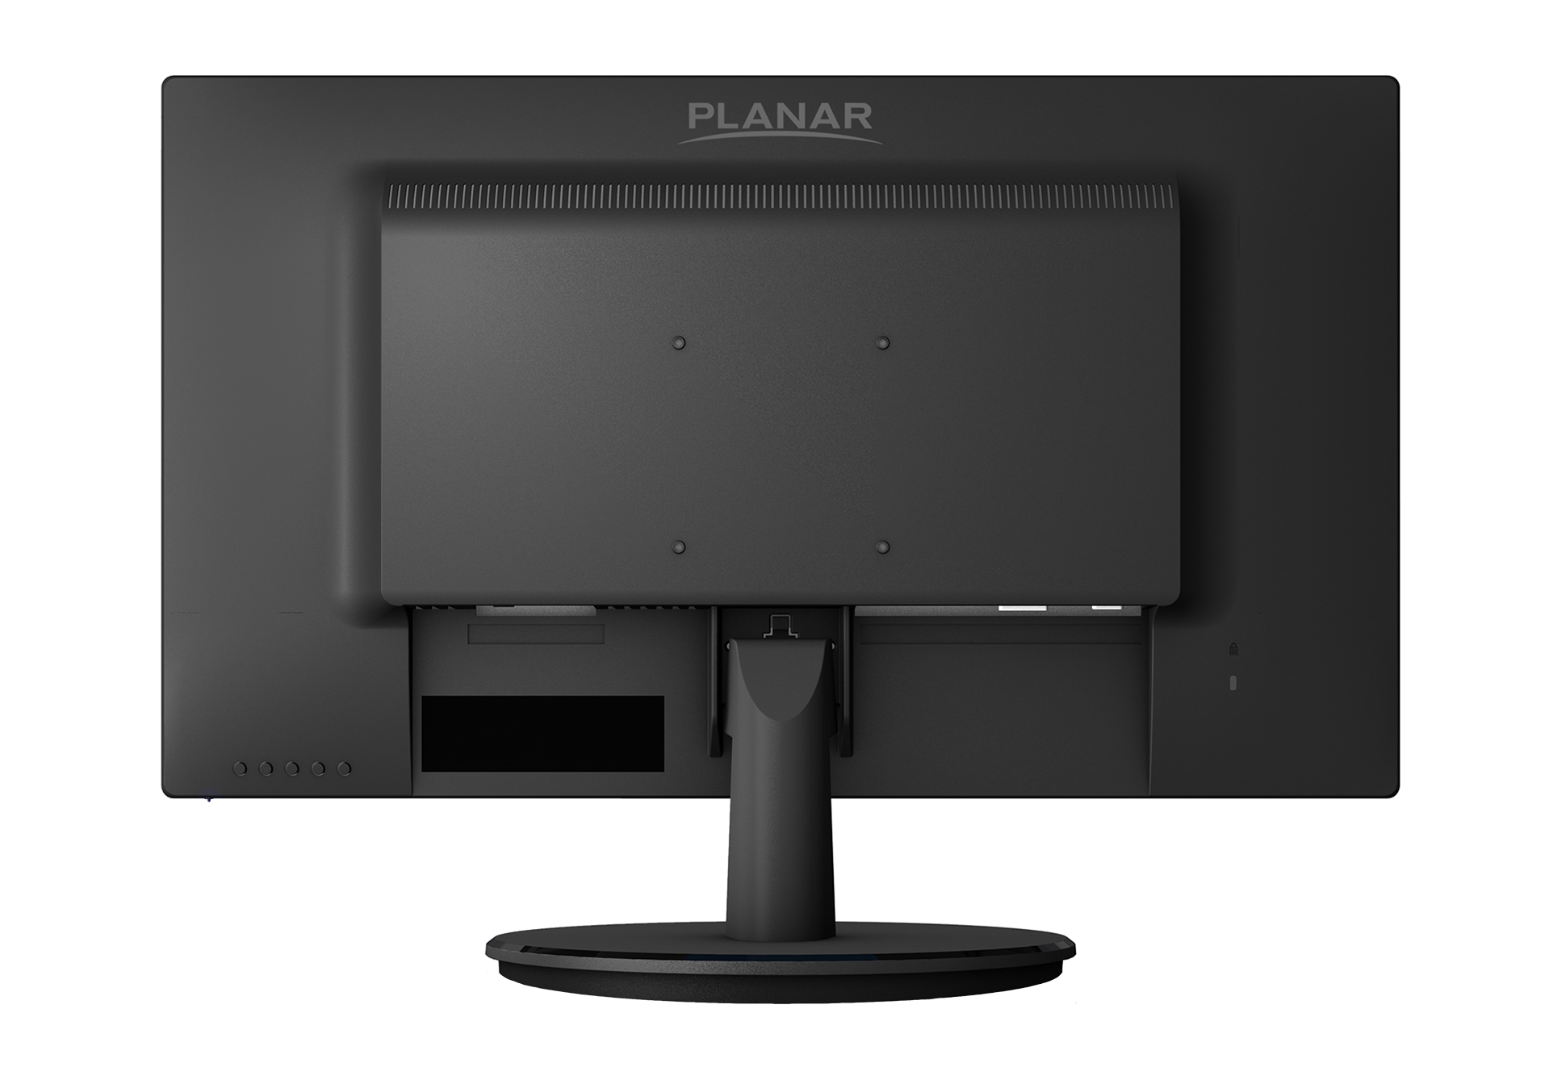 Pxn2770mw 27 Quot Lcd Monitor Planar